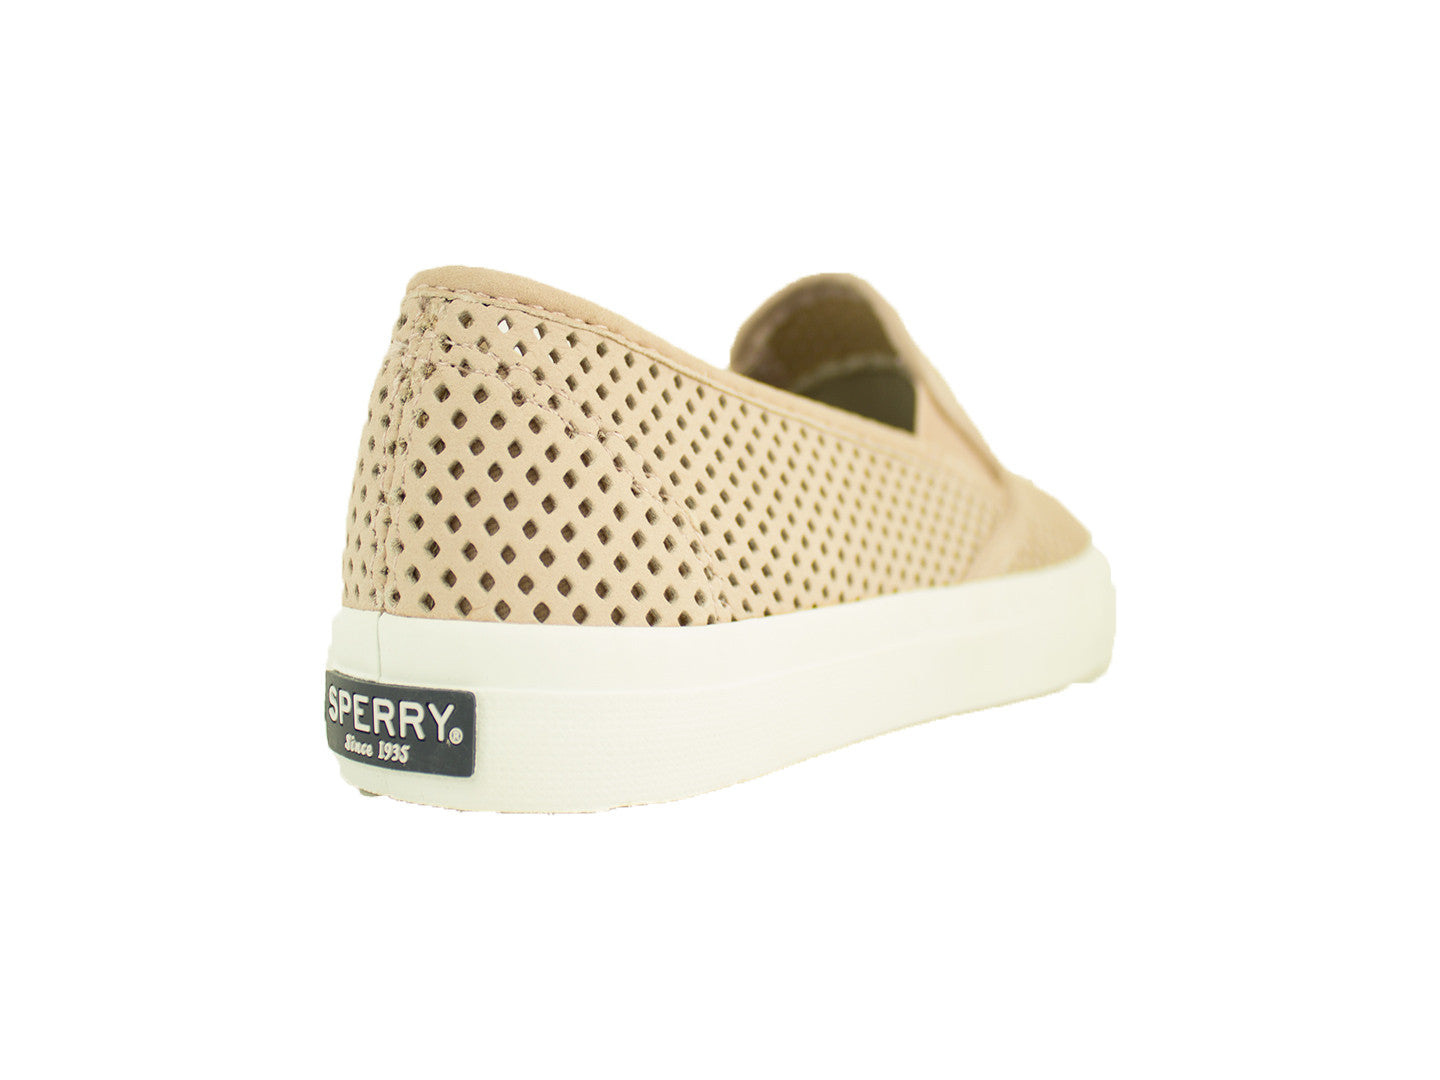 Sperry Seaside Perf